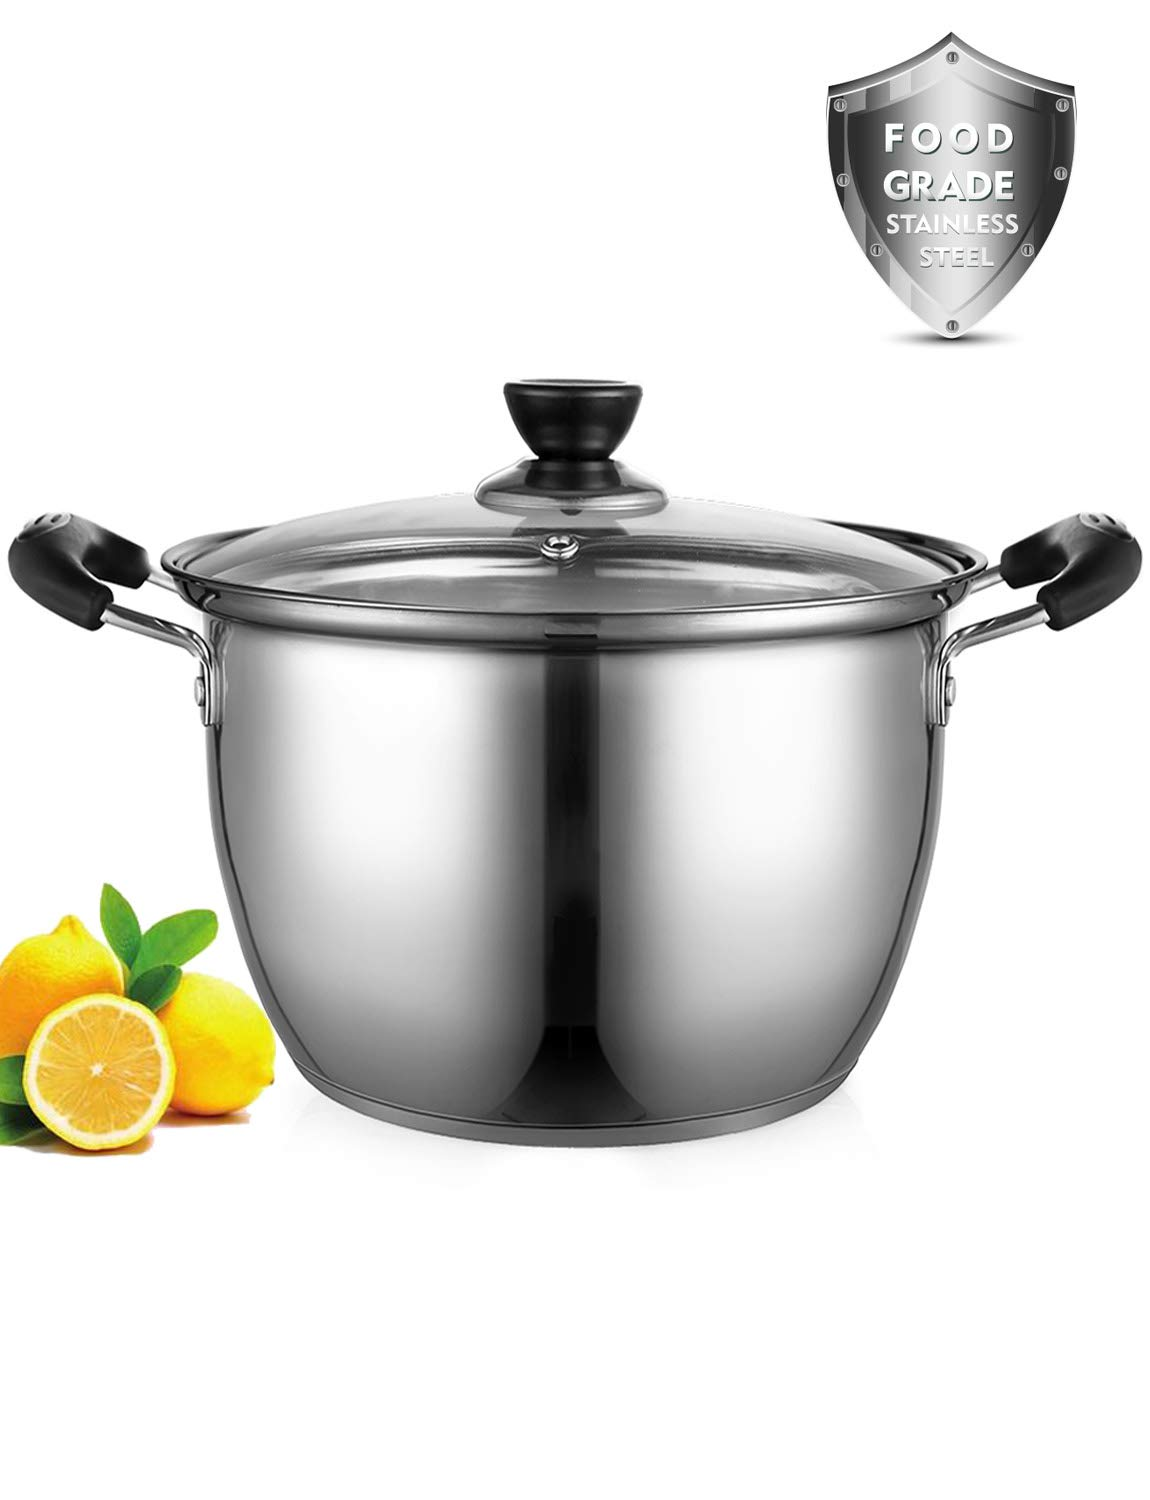 Stock Pot, ONEISALL 6 Quart Stockpot Thicker Stainless Steel Large Induction Pot with Lid, Anti-Scalding Safety Handle and Fast Heating for Induction Cooktop, Gas Stoves, Oven by ONEISALL